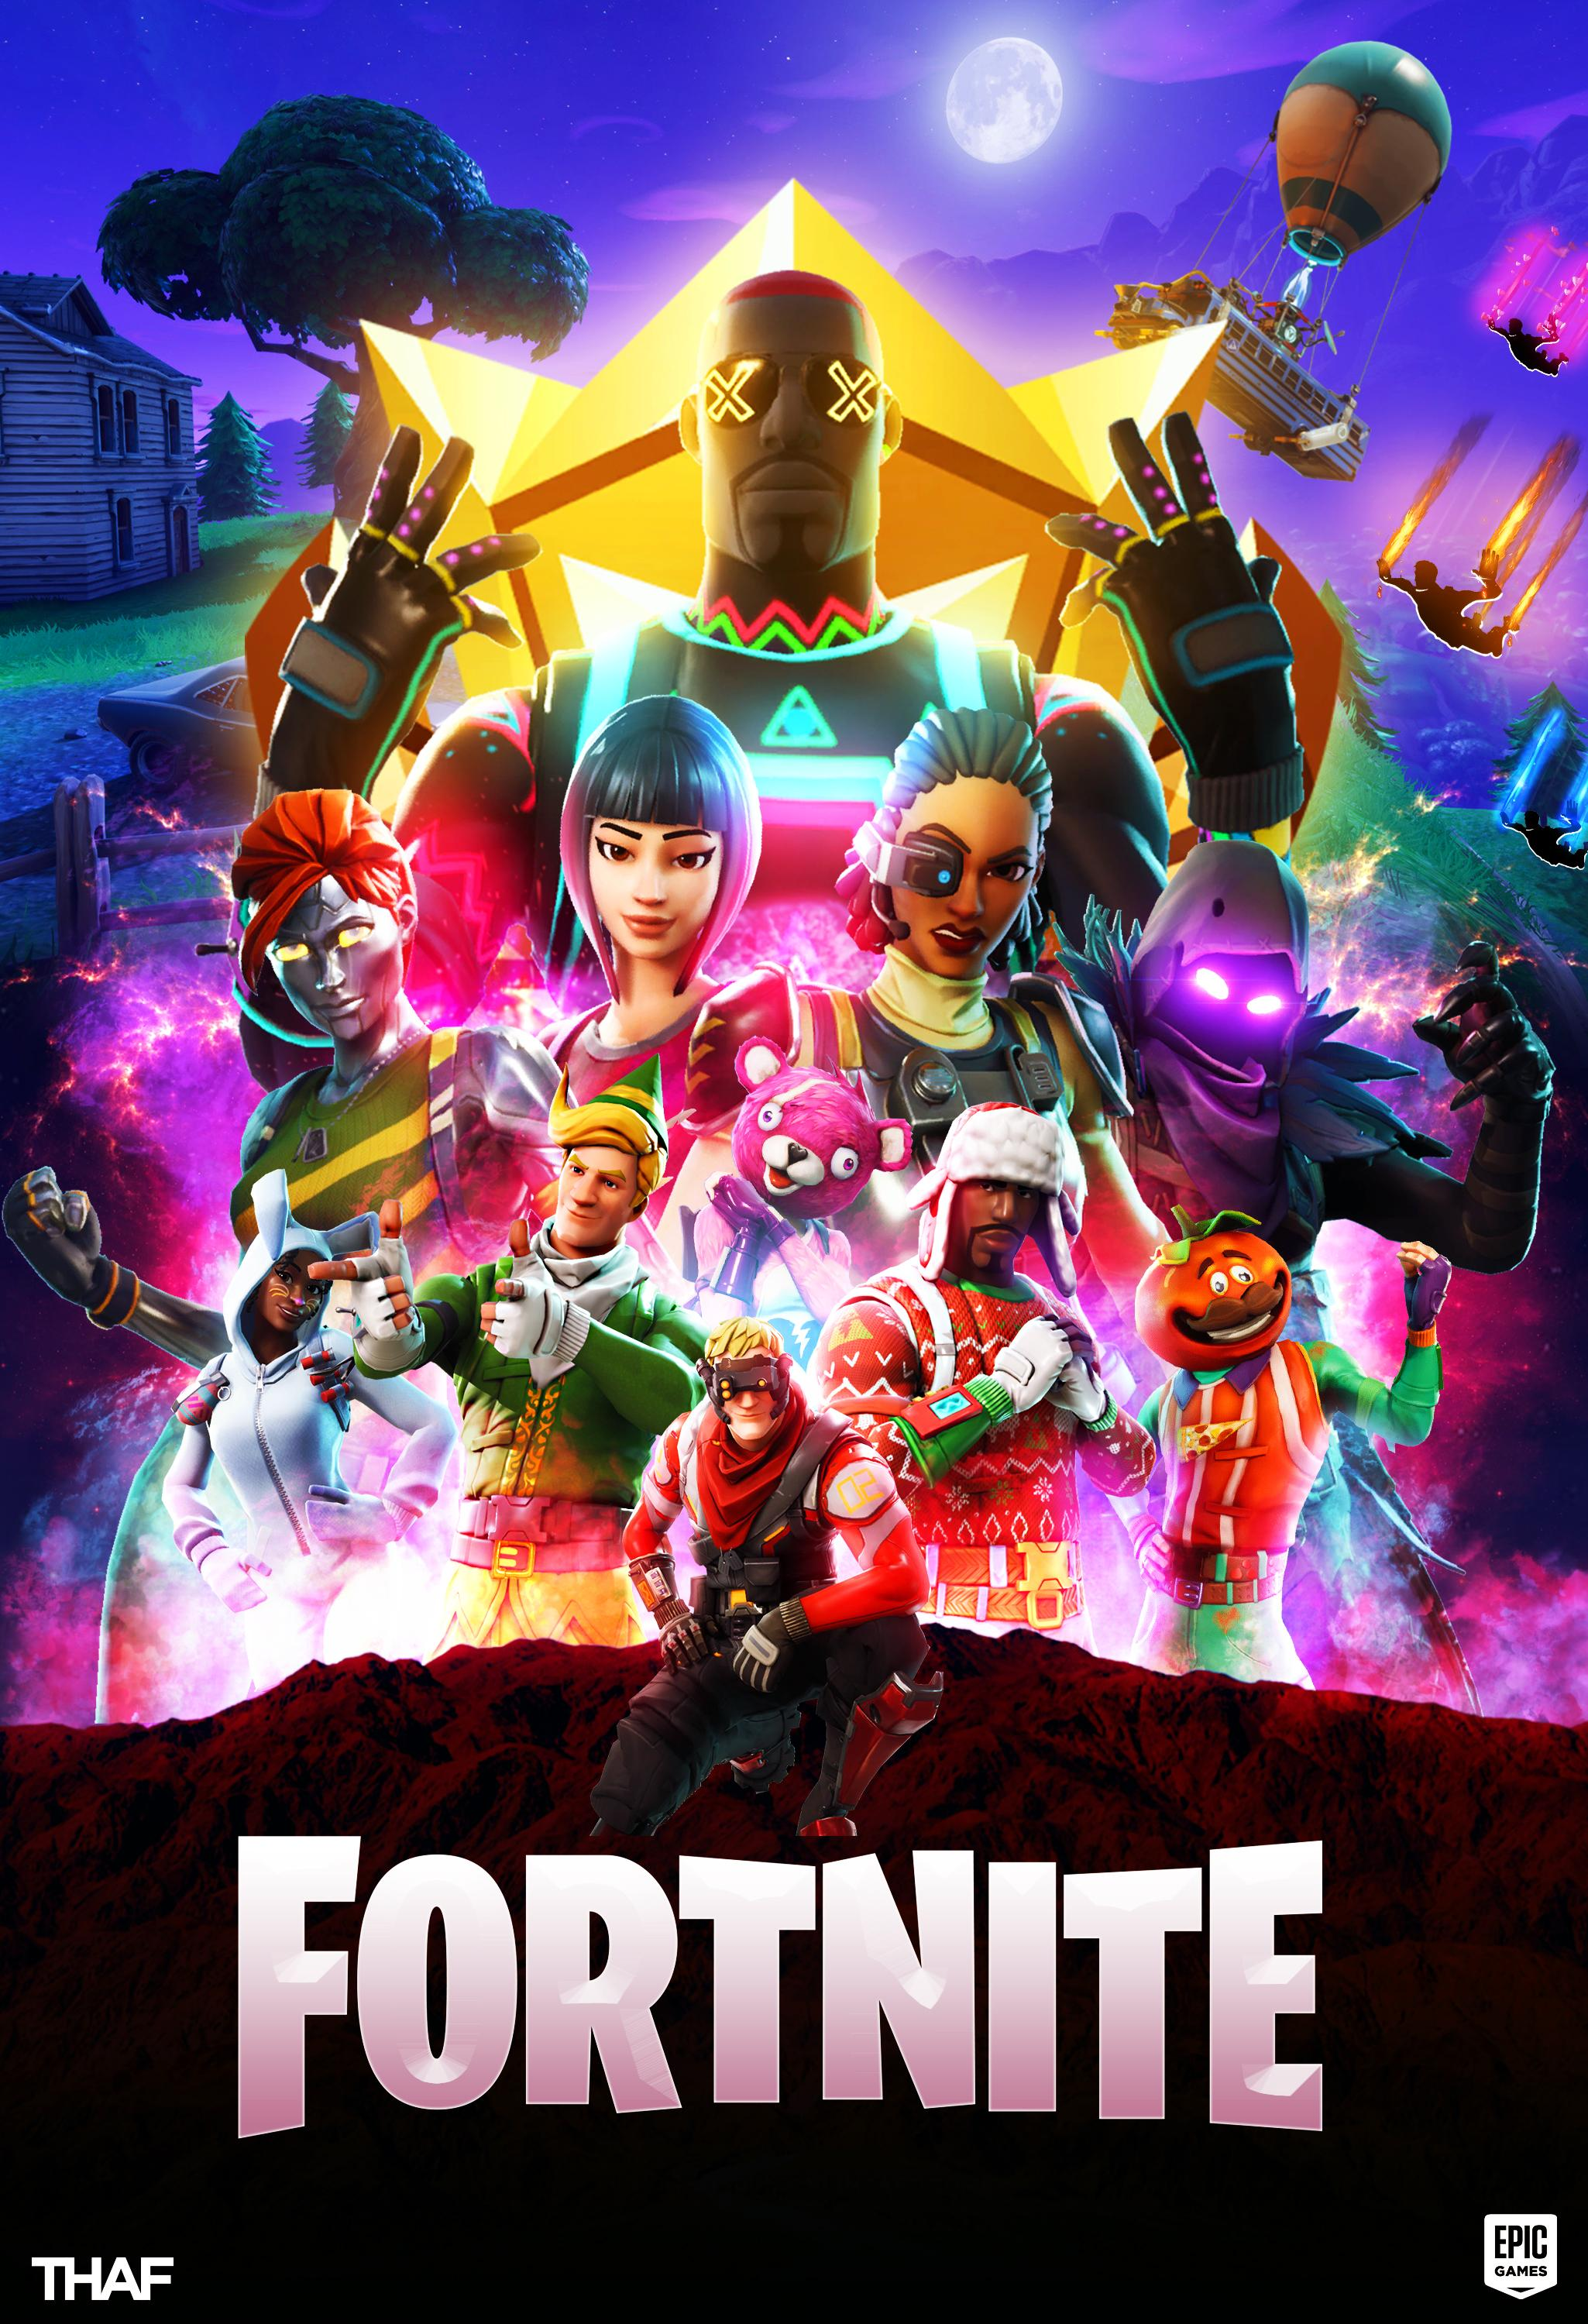 Made this poster for Fortnite Hope you all like FortNiteBR 2050x3000